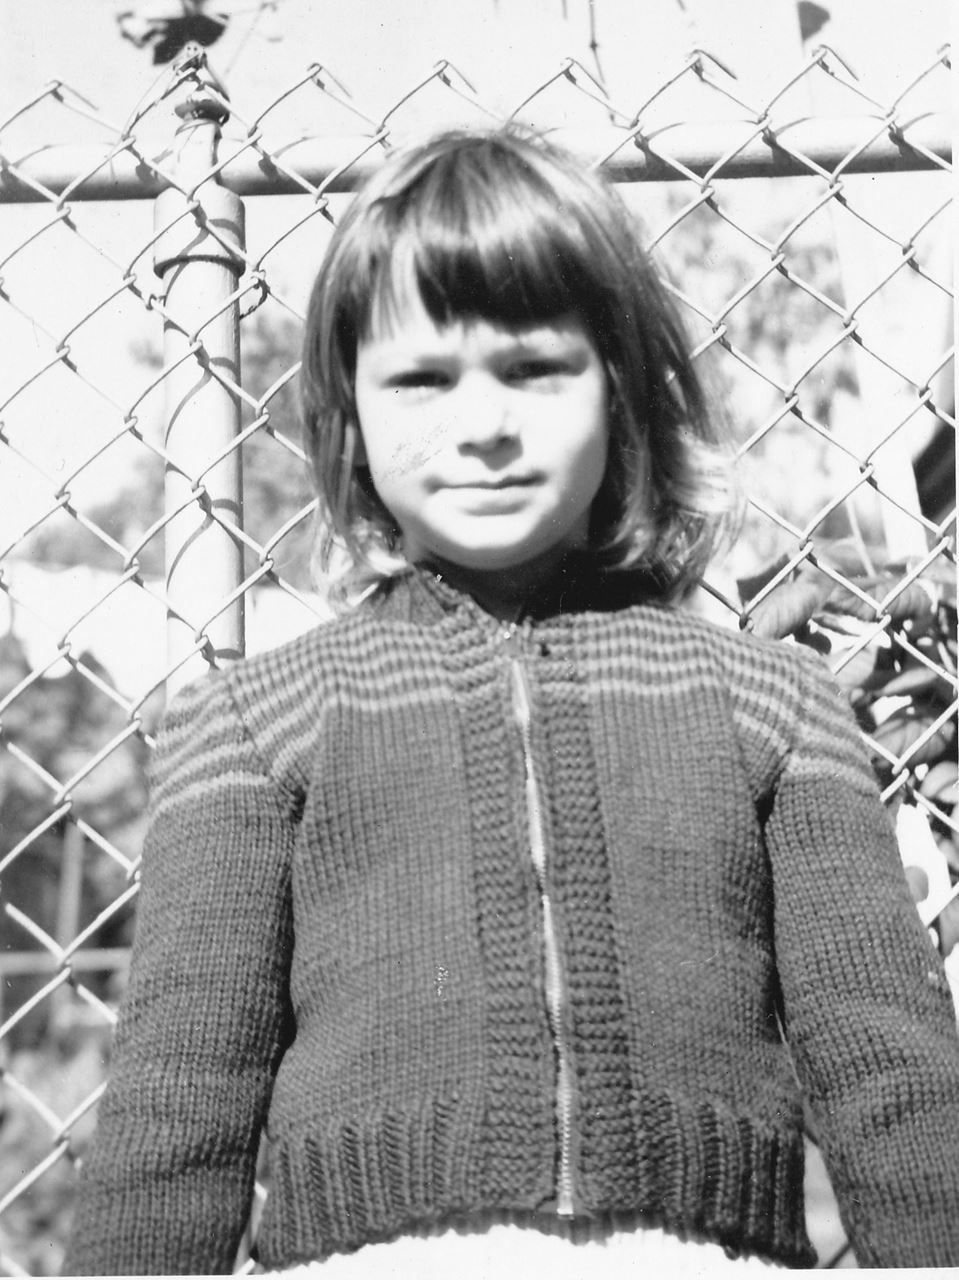 June Guralnick as a child in a sweater in front of a chain link fence - black and white photo